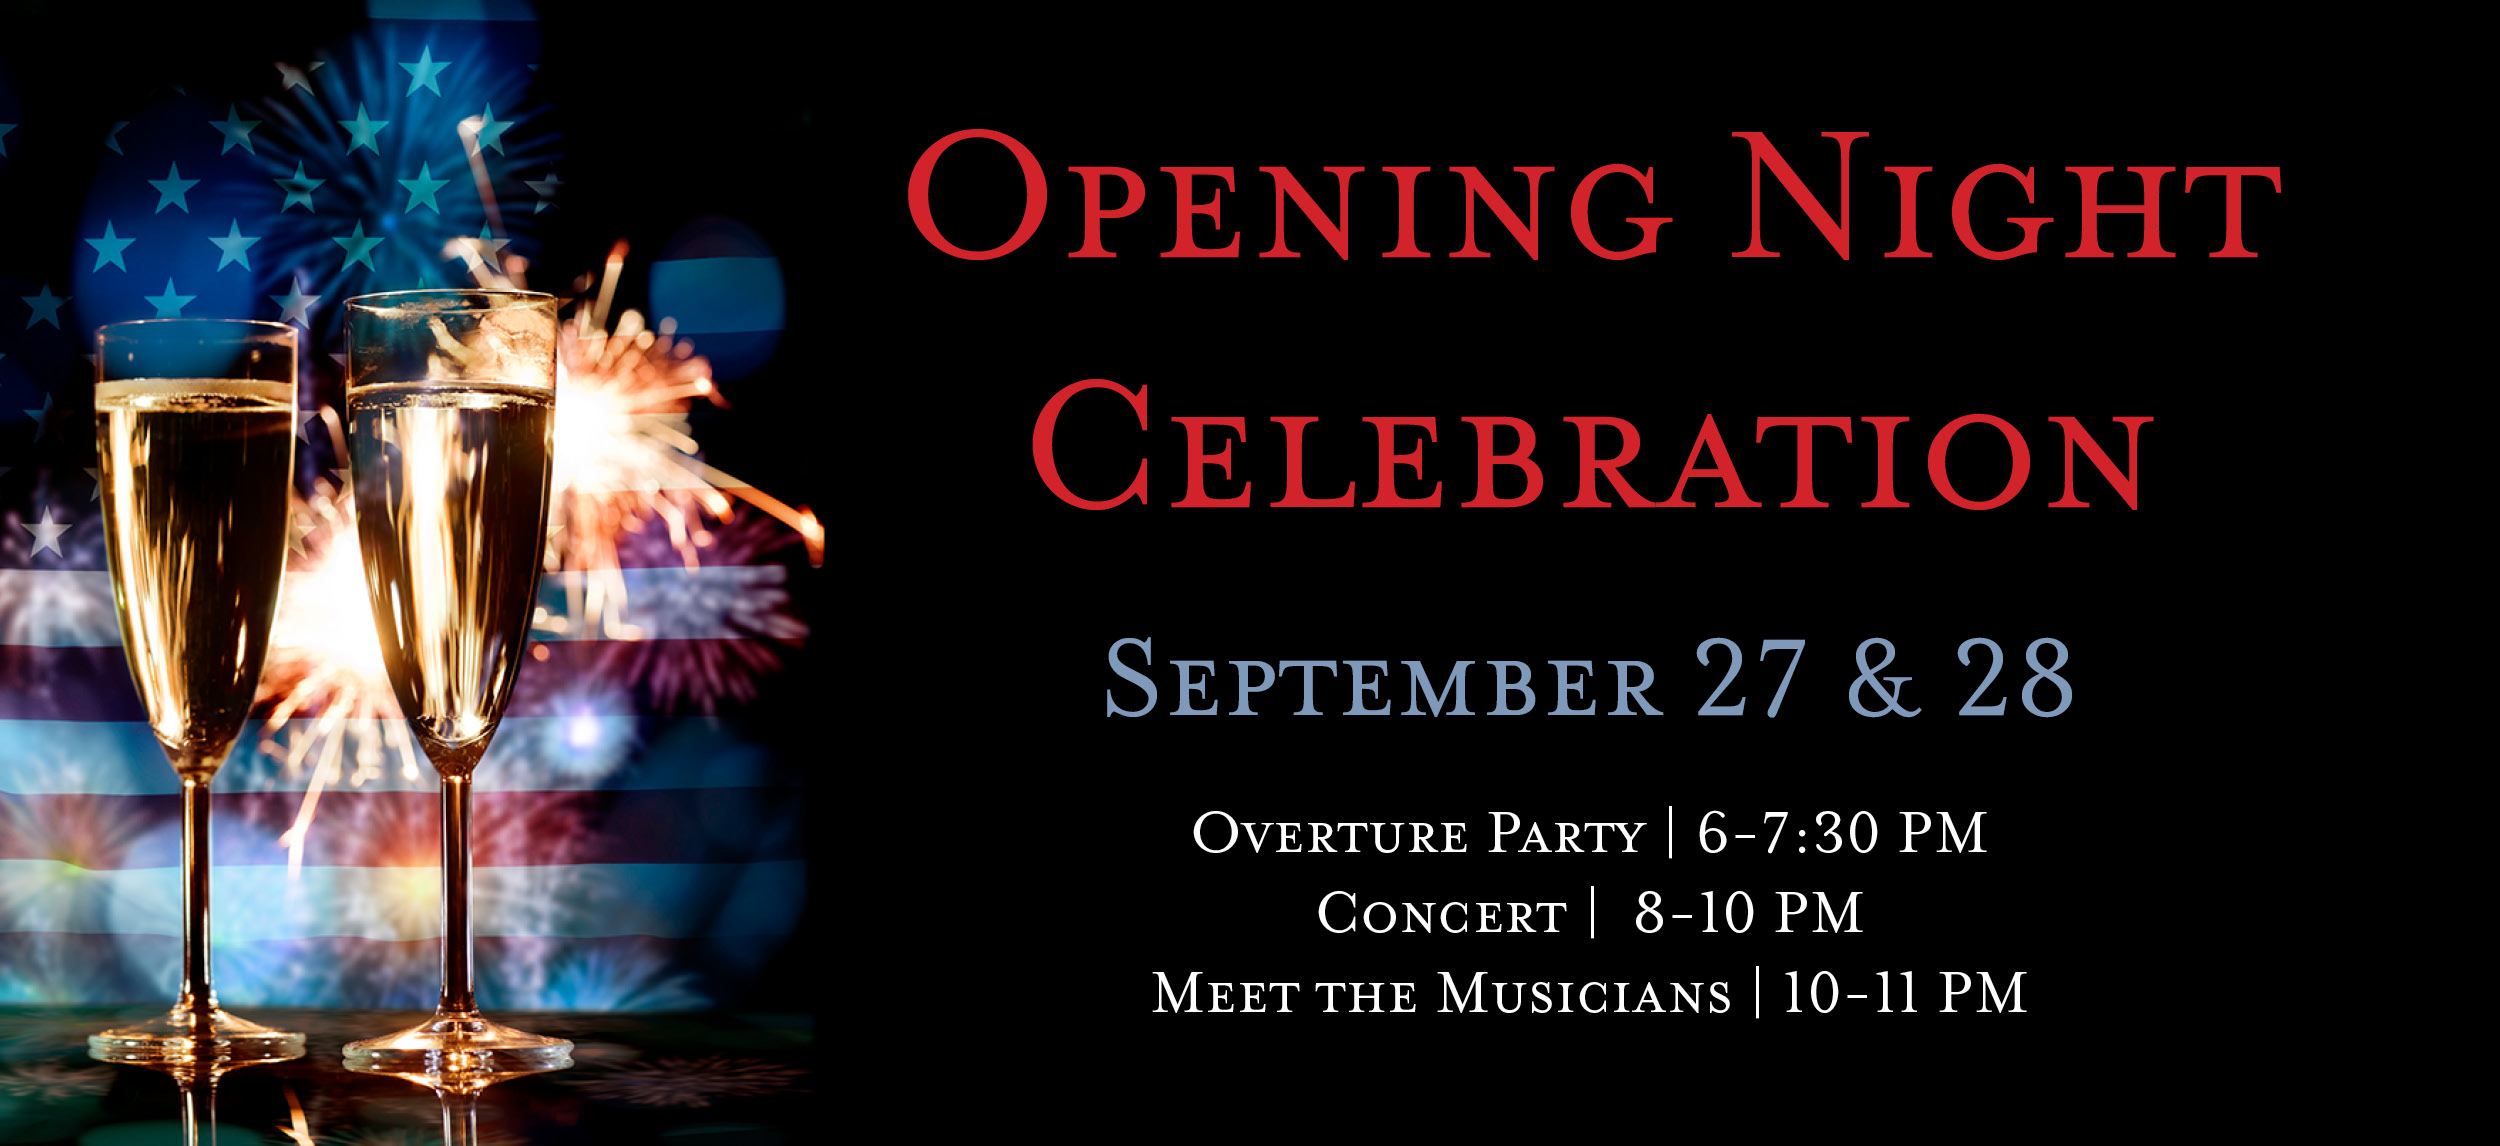 Champagne, Fireworks, and an American flag in the background. Opening Night Celebration Package. September 27 & 28. Overture from 6 to 7:30 PM. Concert from 8 to 10 PM. Meet the Musicians from 10 to 11 PM.